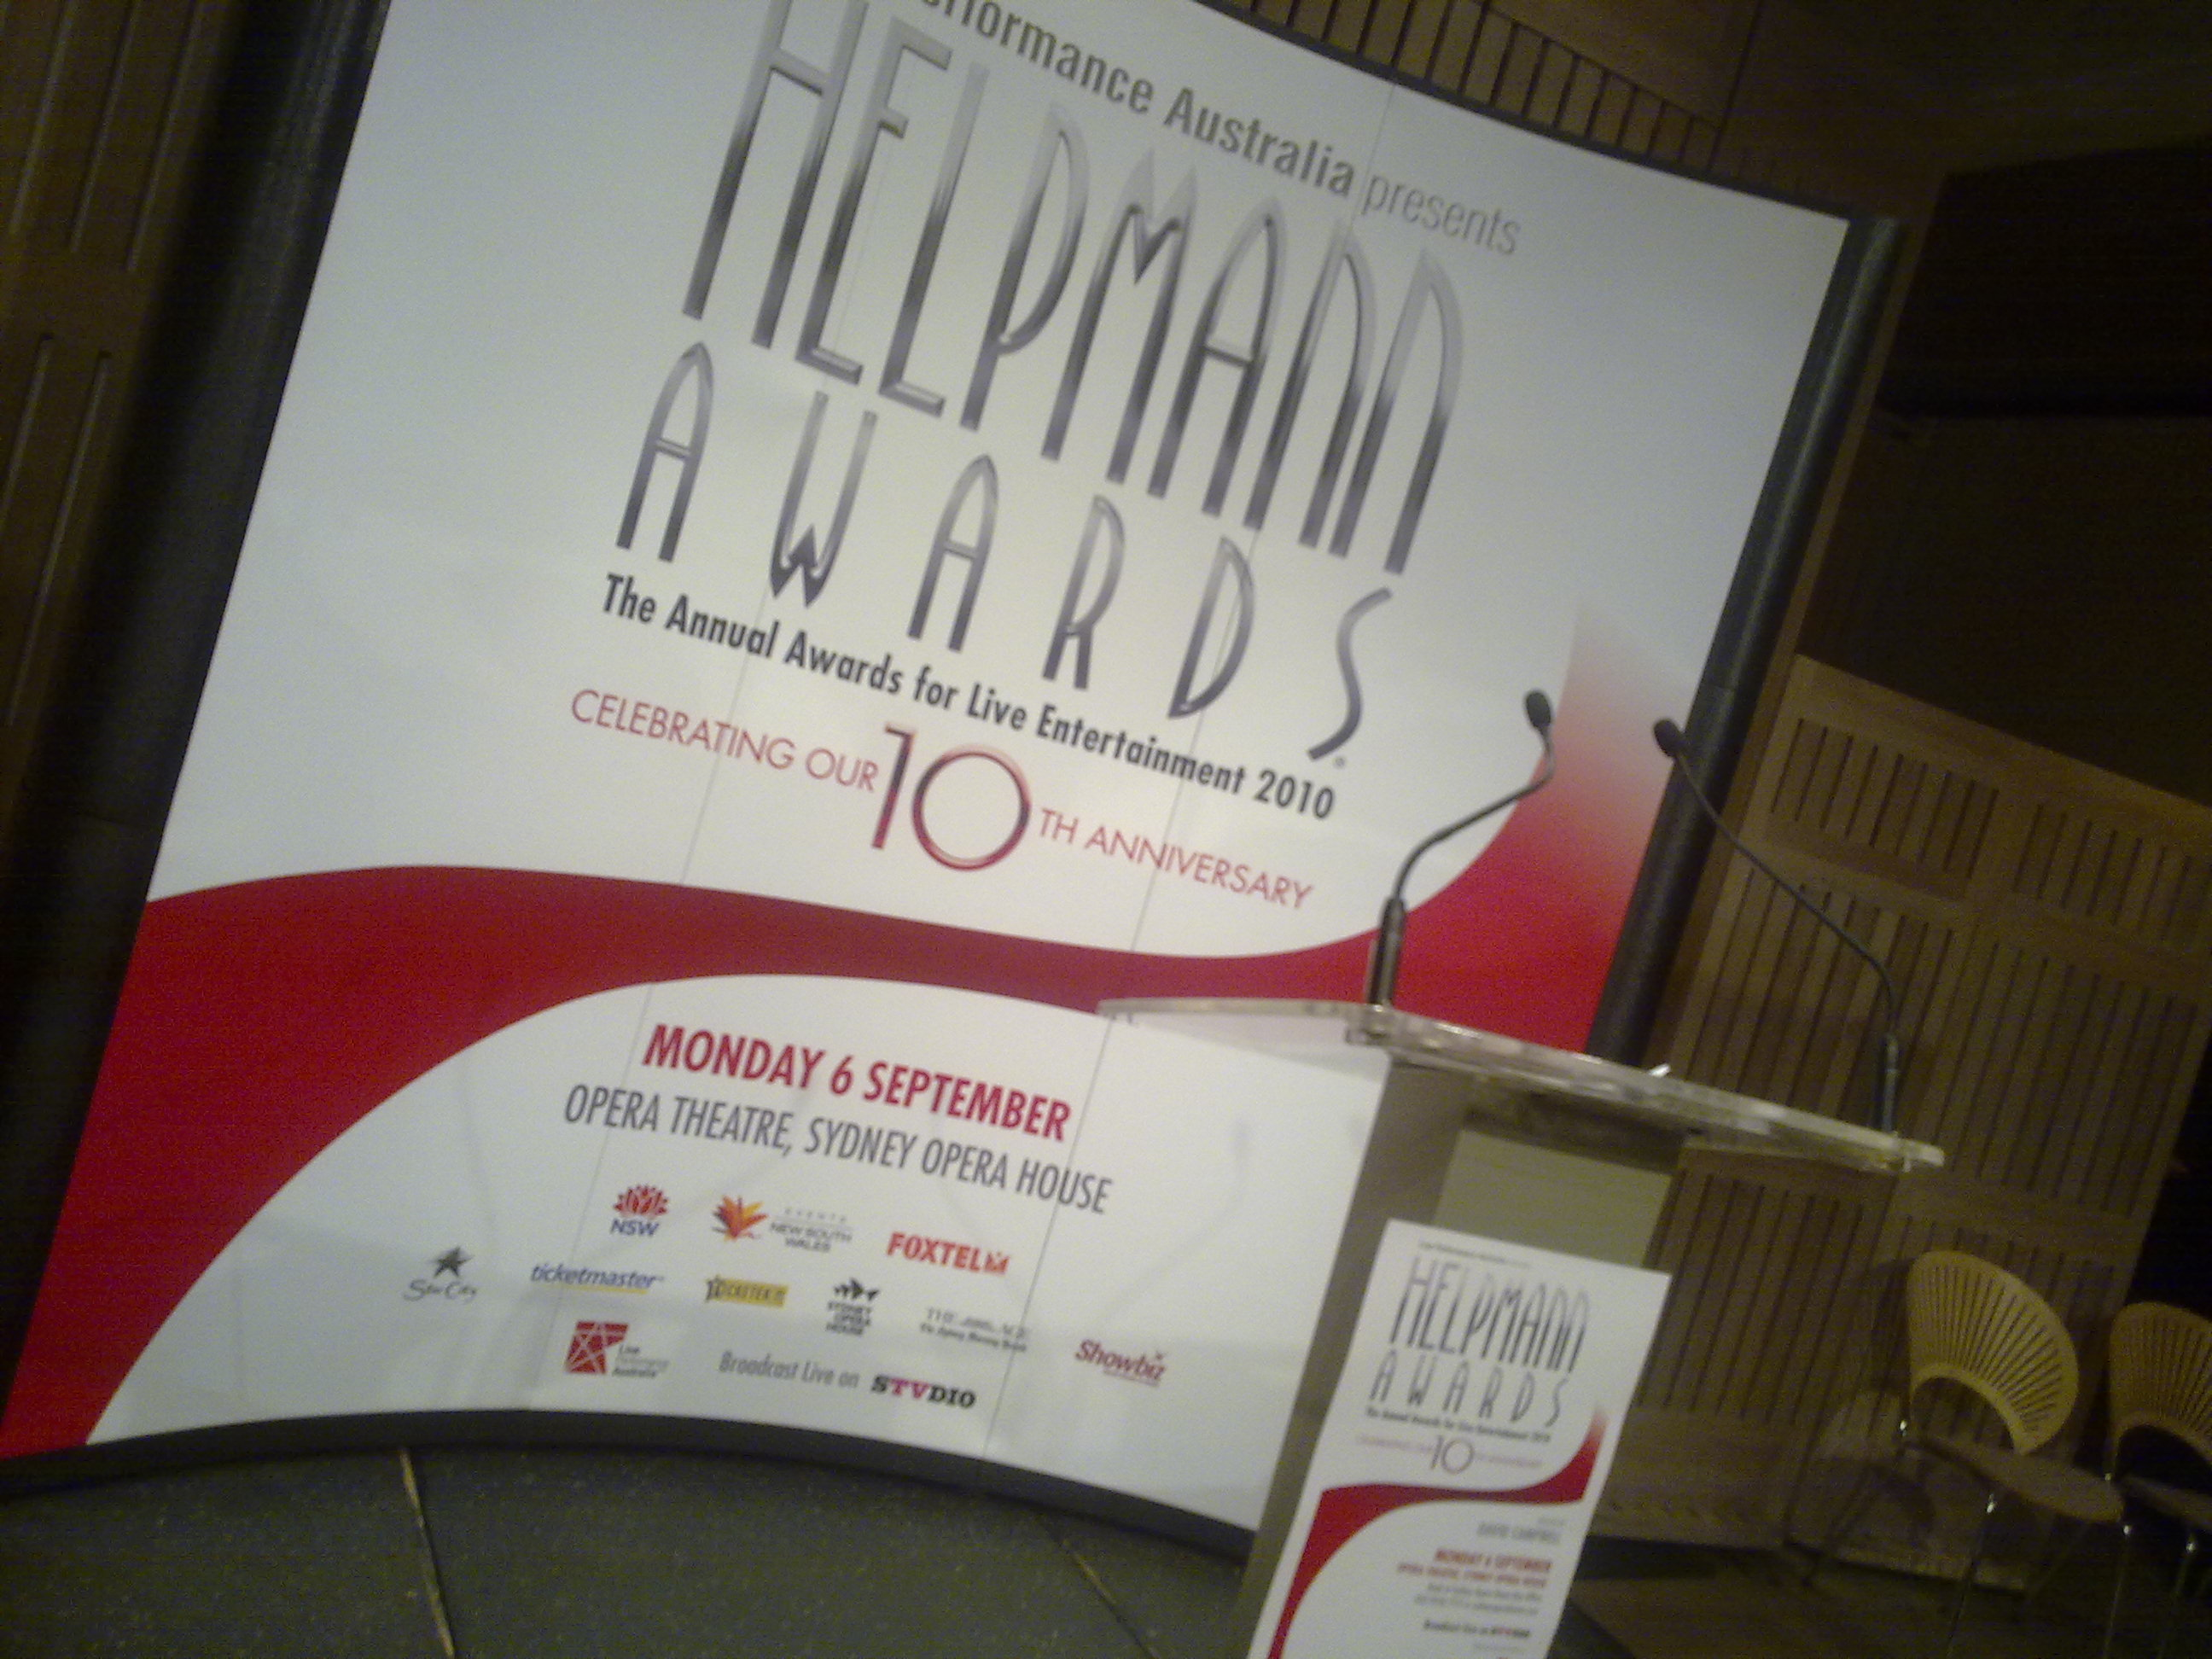 Helpmann Awards Finalists